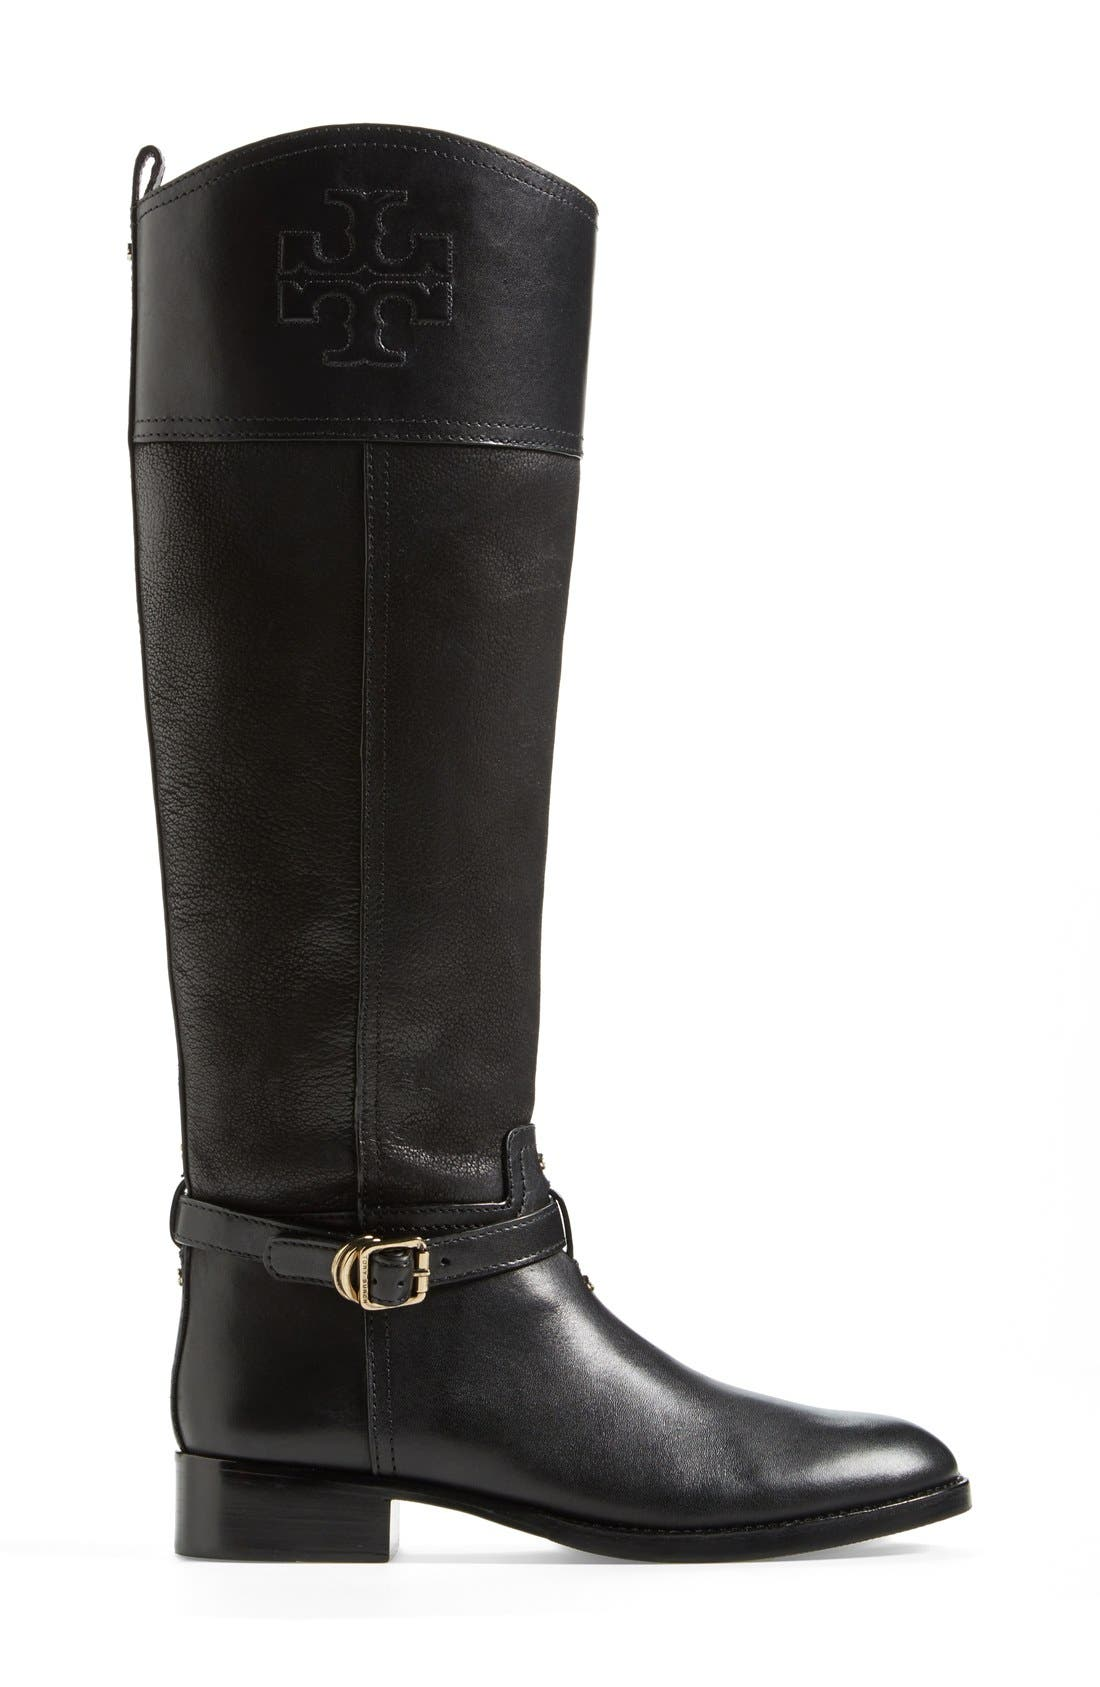 TORY BURCH, 'Simone' Riding Boot, Alternate thumbnail 4, color, 009